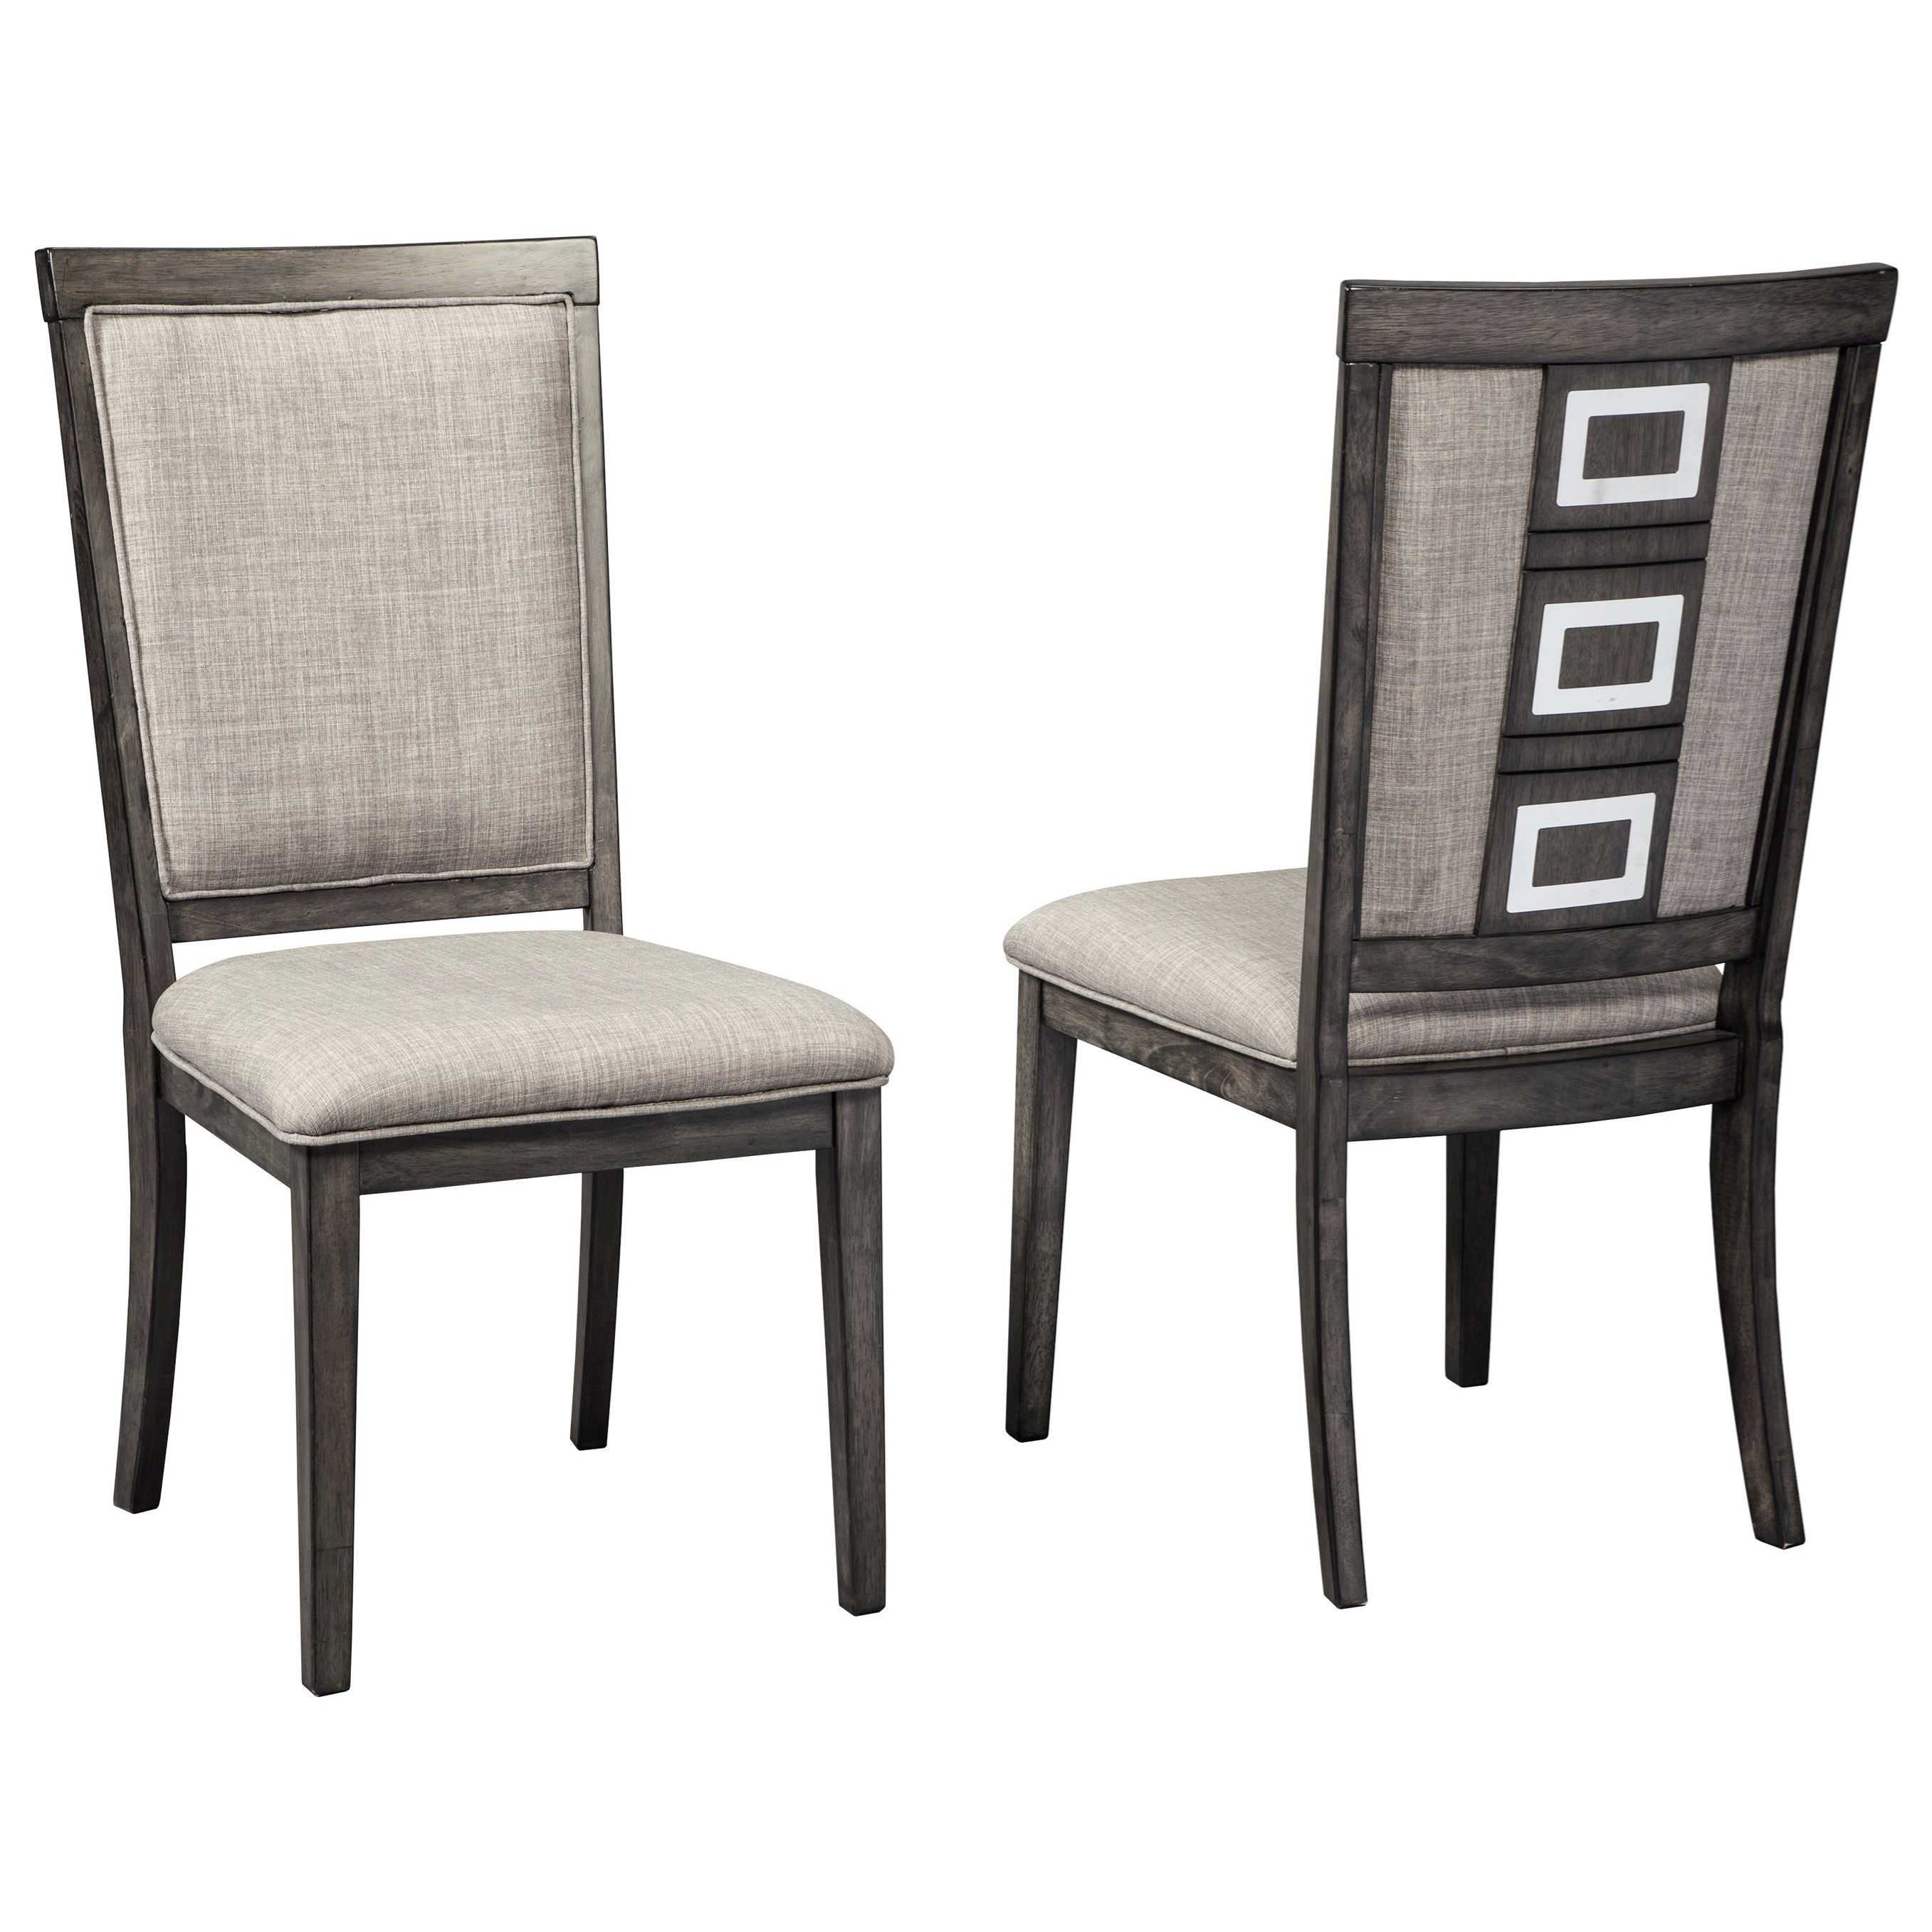 Chadoni Upholstered Side Chair by Signature Design by Ashley at Zak's Warehouse Clearance Center